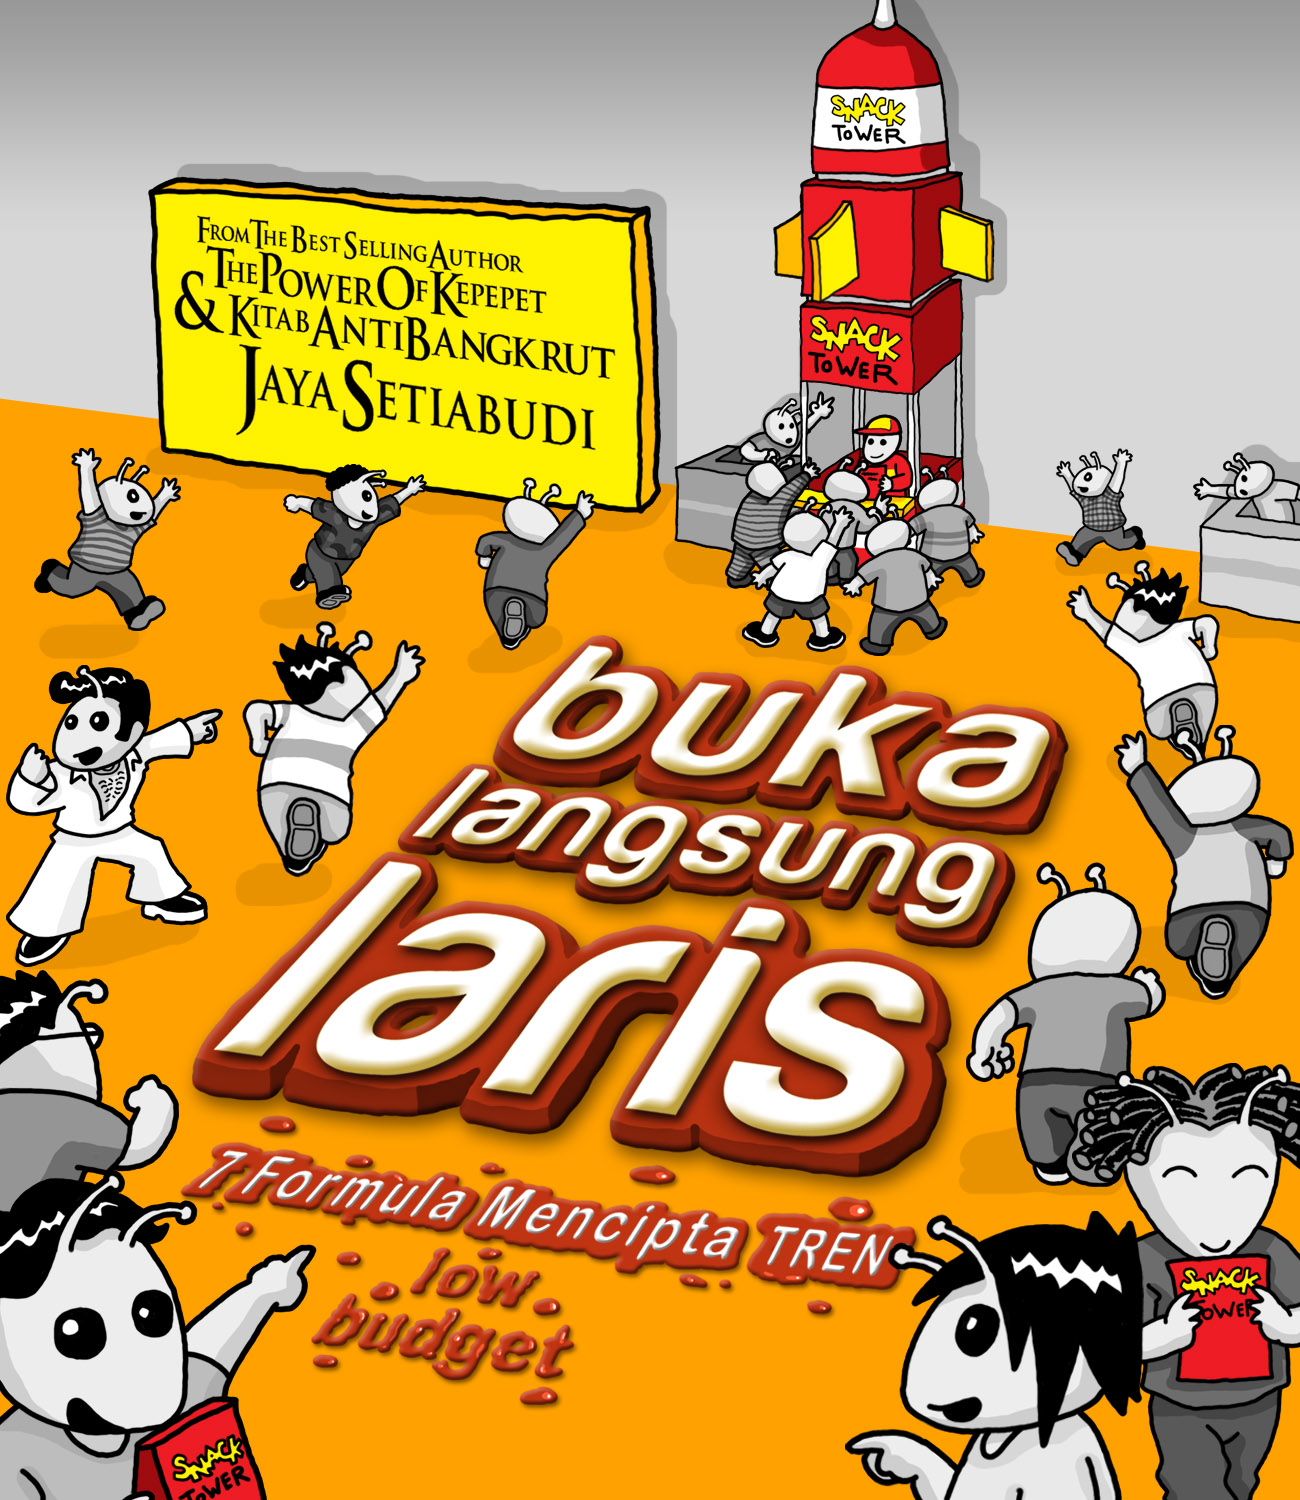 Ebook Buka Langsung Laris (Edisi Revisi)